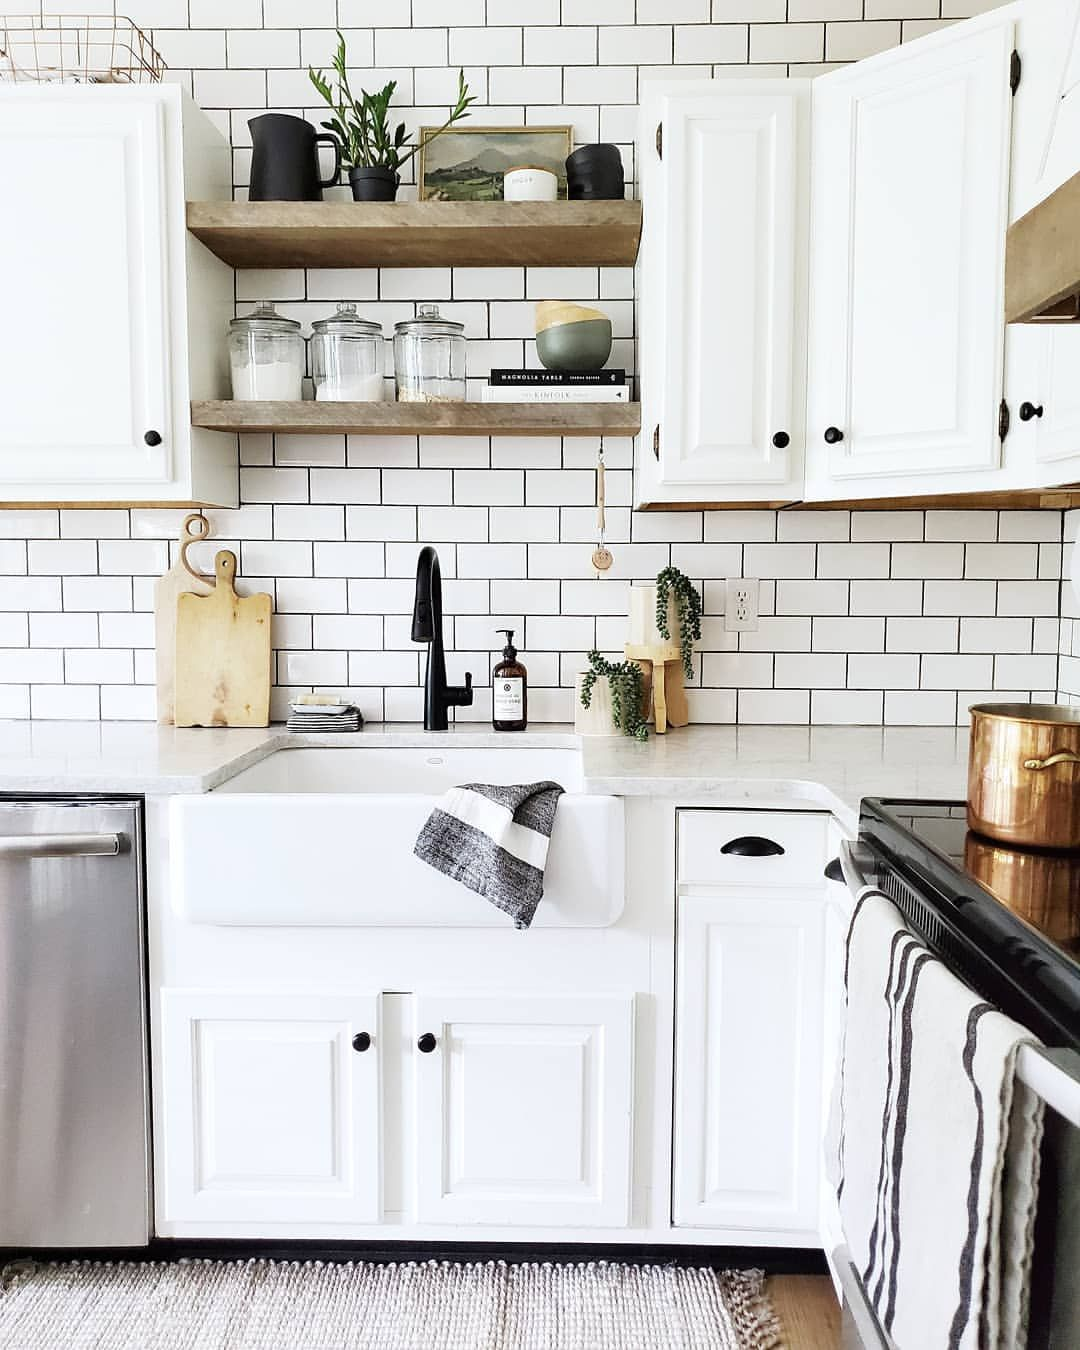 Removing The Upper Cabinets Above The Sink And Replacing Them With Open Shelves Was One Of The Best Decisions We Made Home Decor Kitchen Kitchen Kitchen Decor